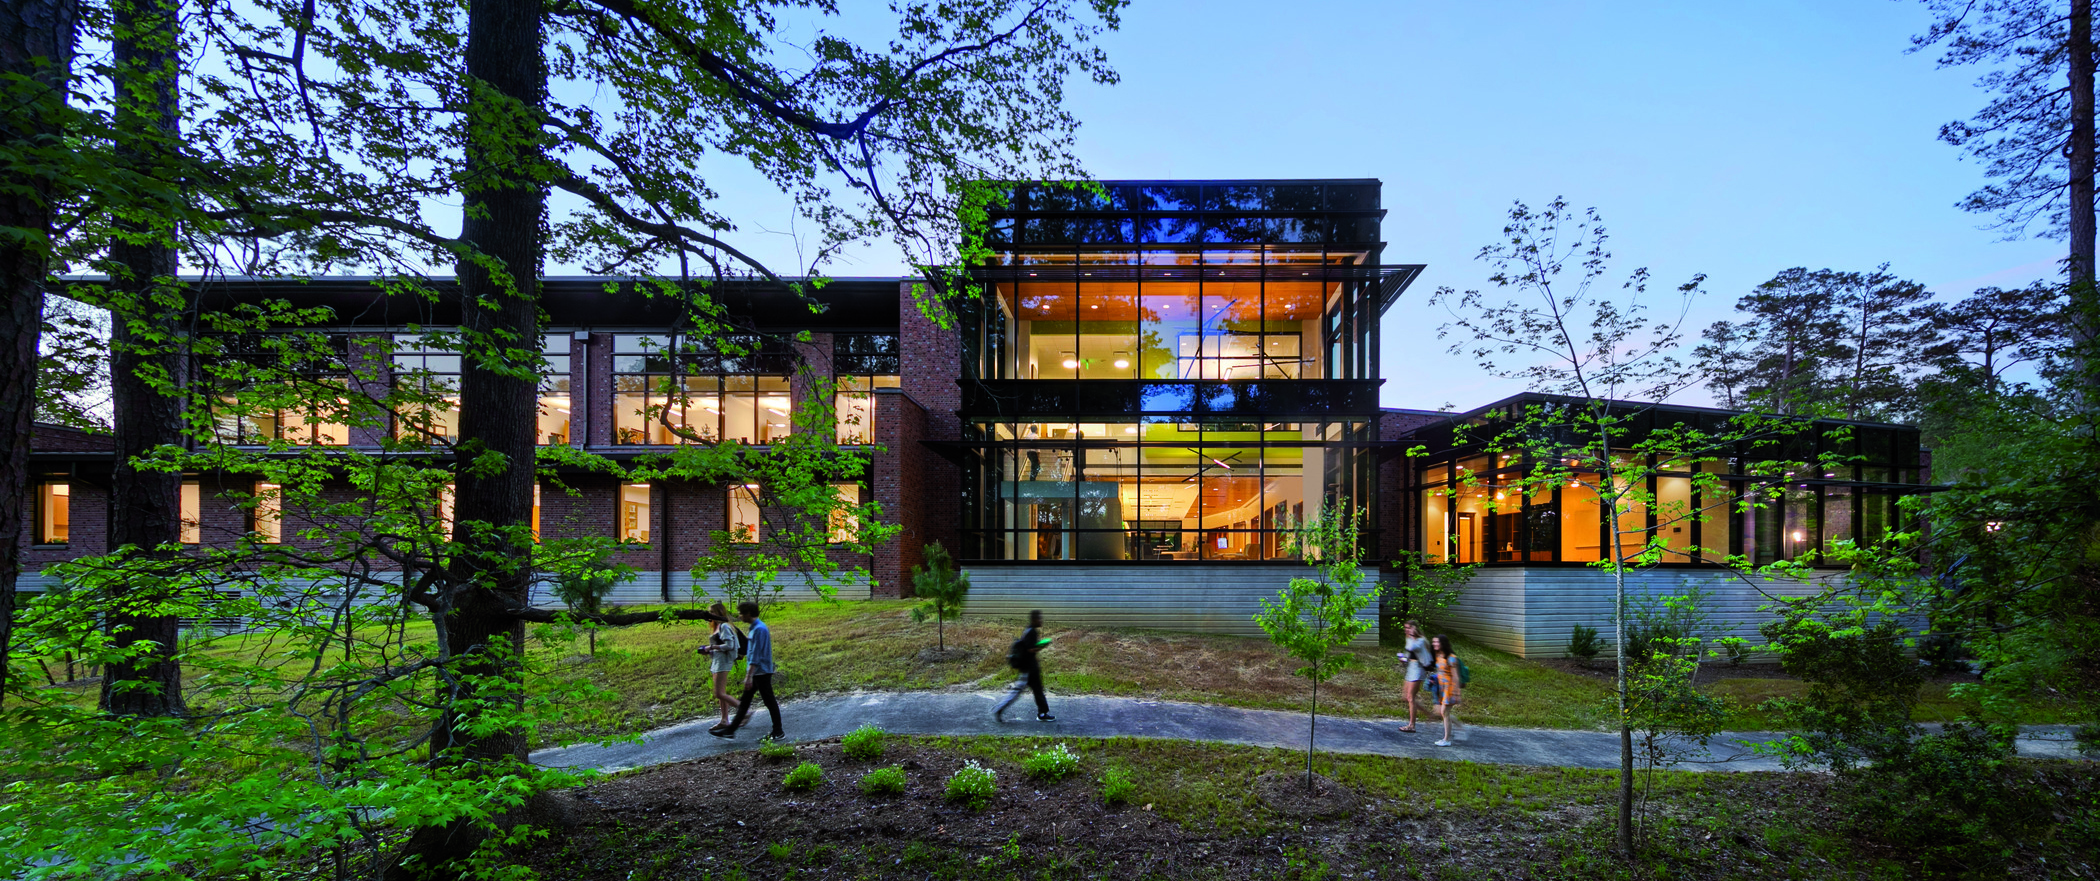 McLeod Tyler Wellness Center at William & Mary